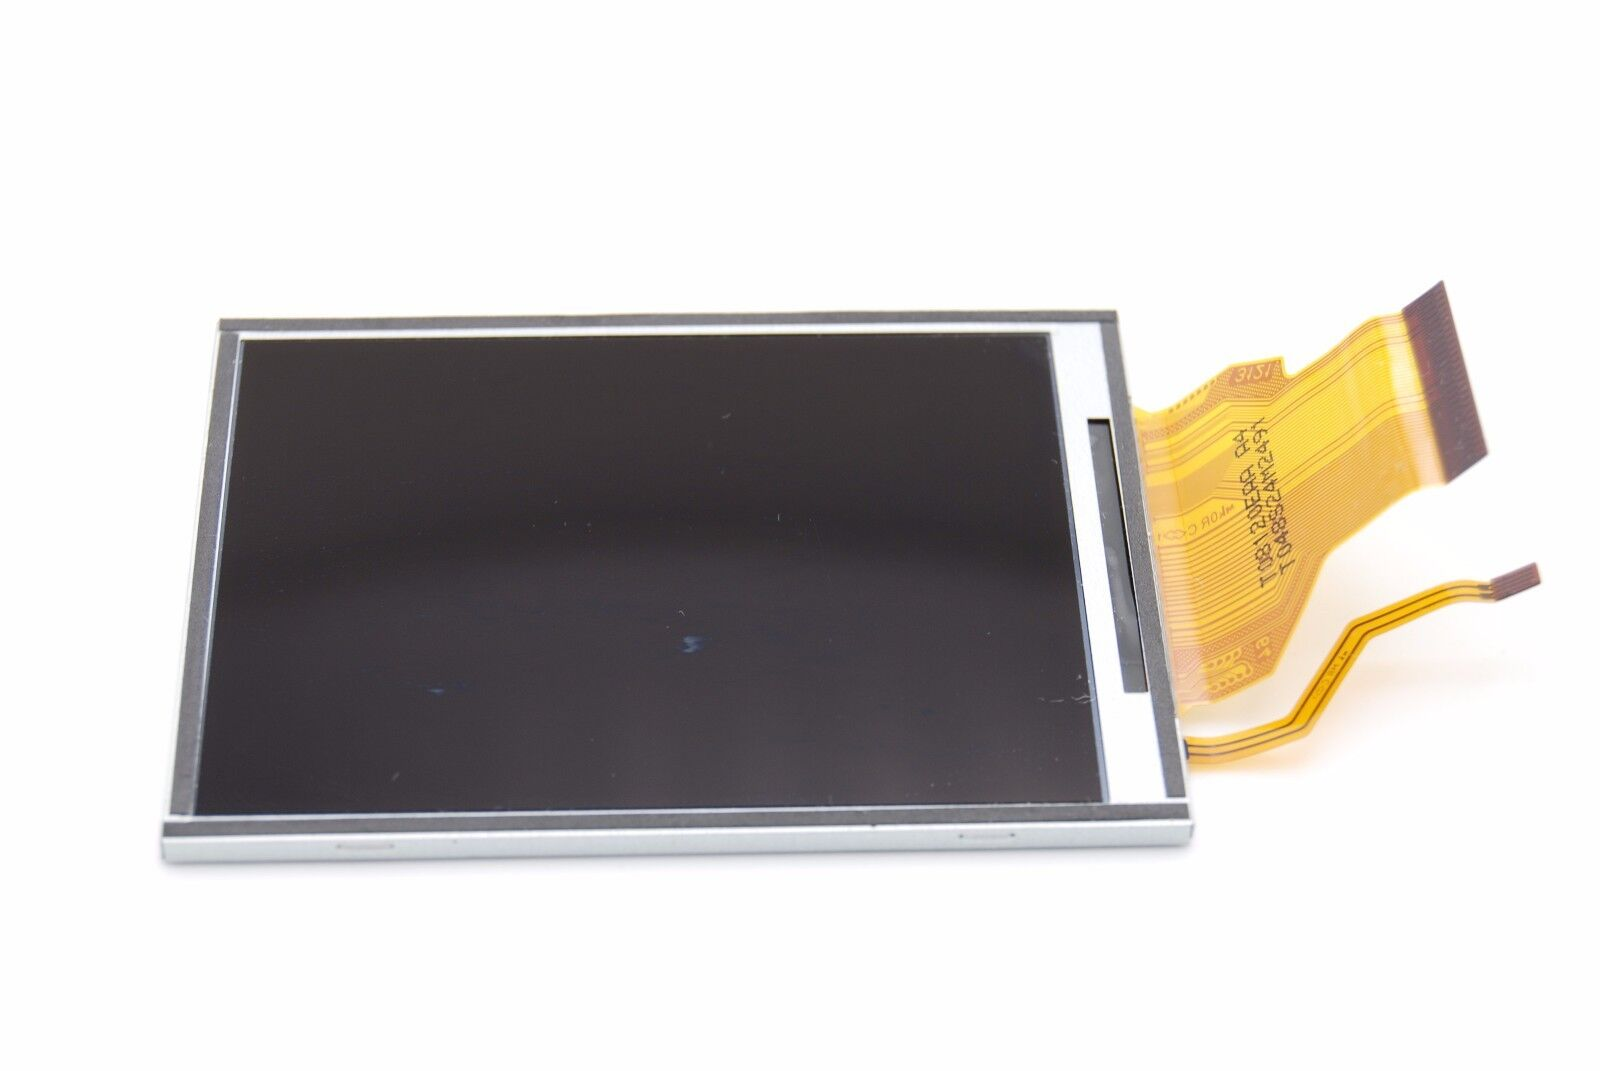 Brand New LCD Display Screen Monitor Assembly Part Repair Part Unit Camera Replacement for Nikon Coolpix S9500 Camera